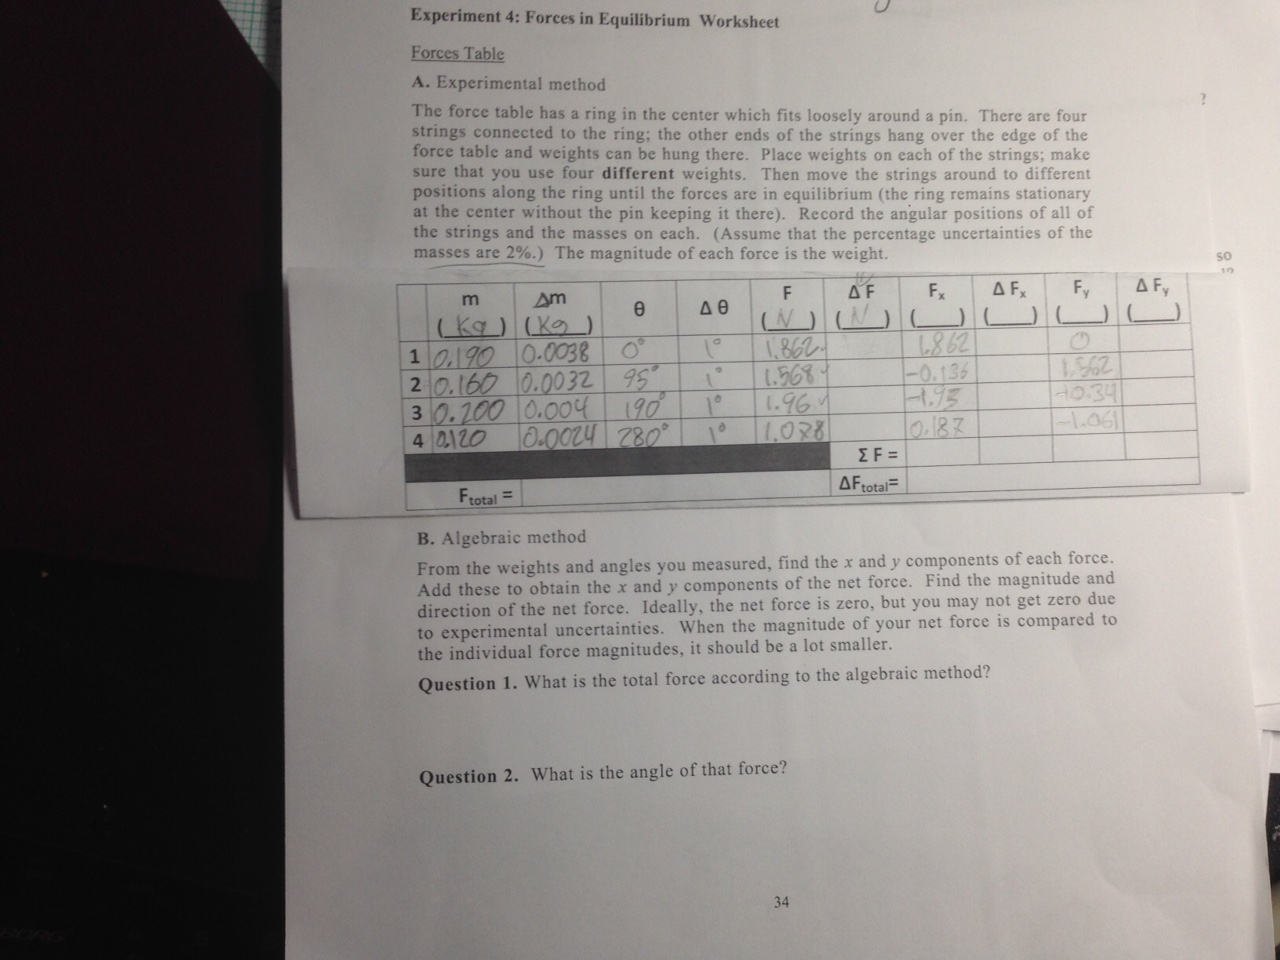 worksheet Equilibrium Worksheet experiment 4 forces in equilibrium worksheet forc chegg com help with completing the table a experimental method force table